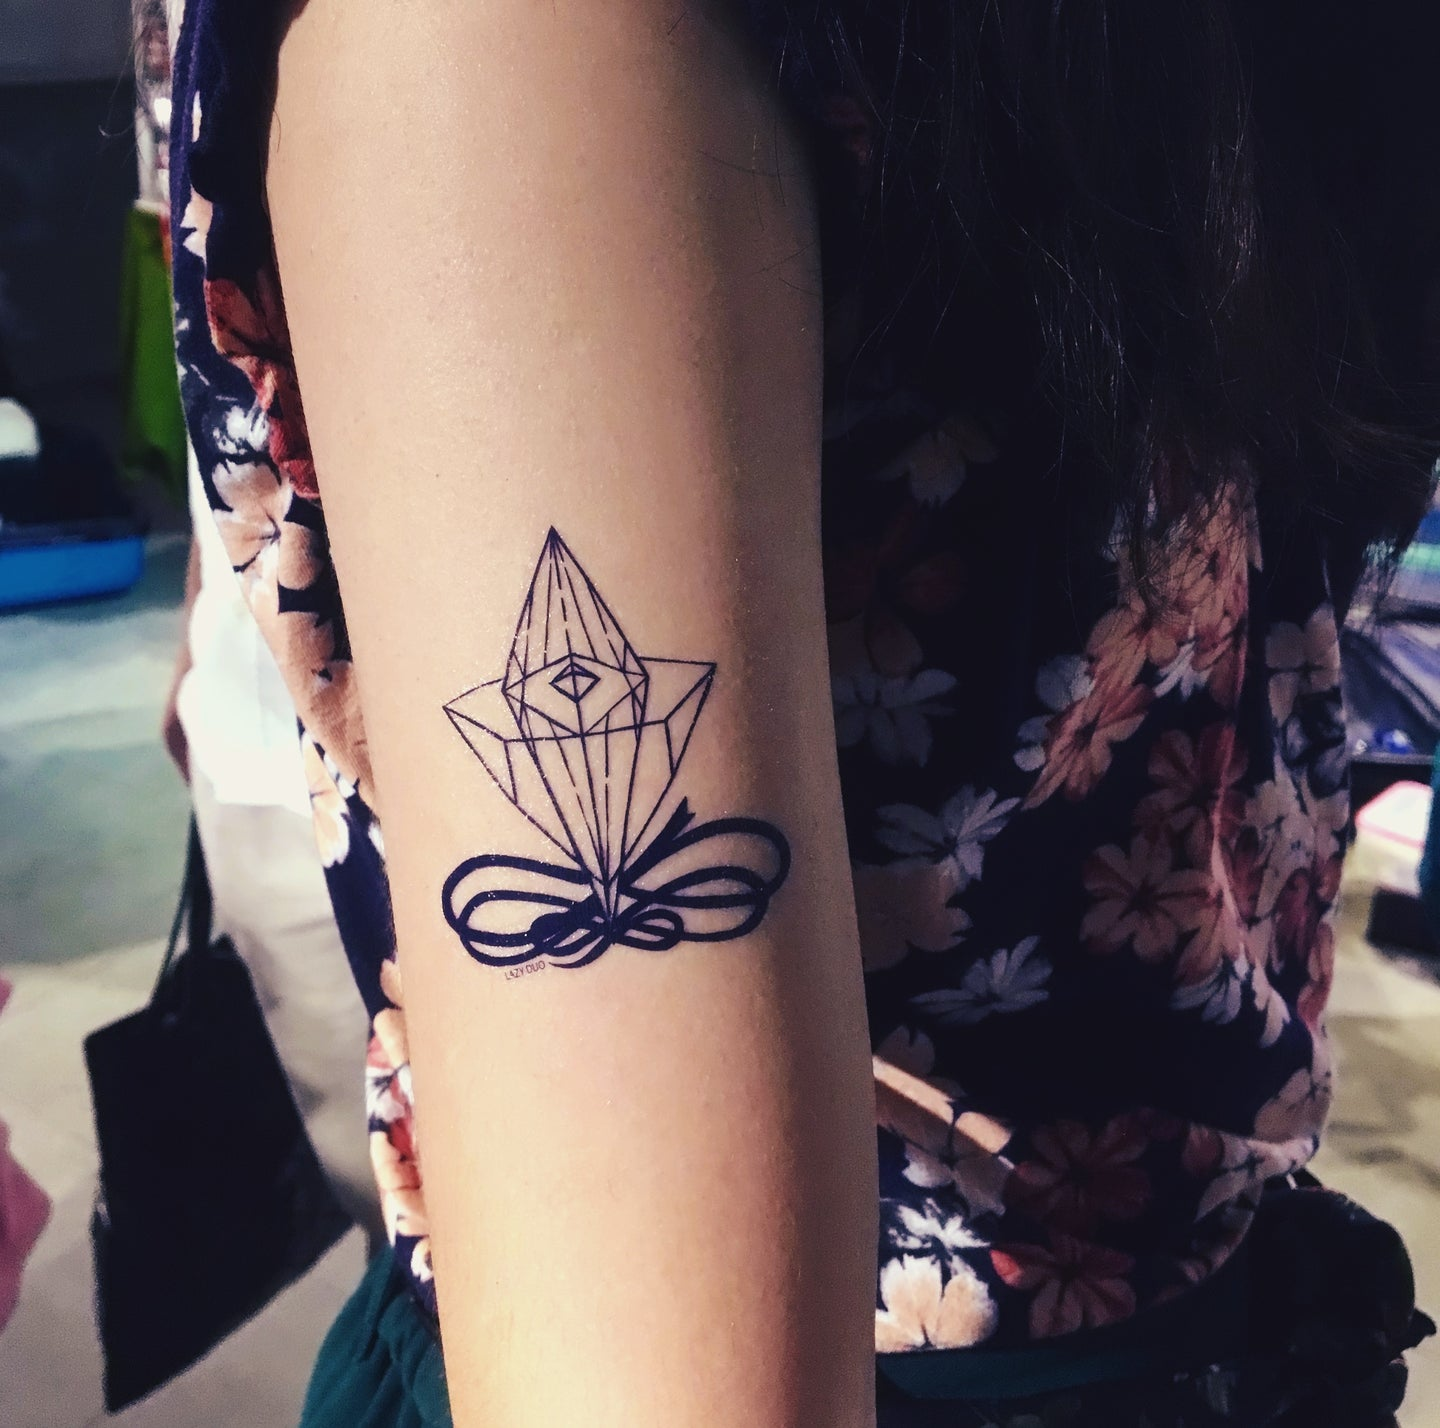 Minimal Diamond Tattoo - LAZY DUO TATTOO